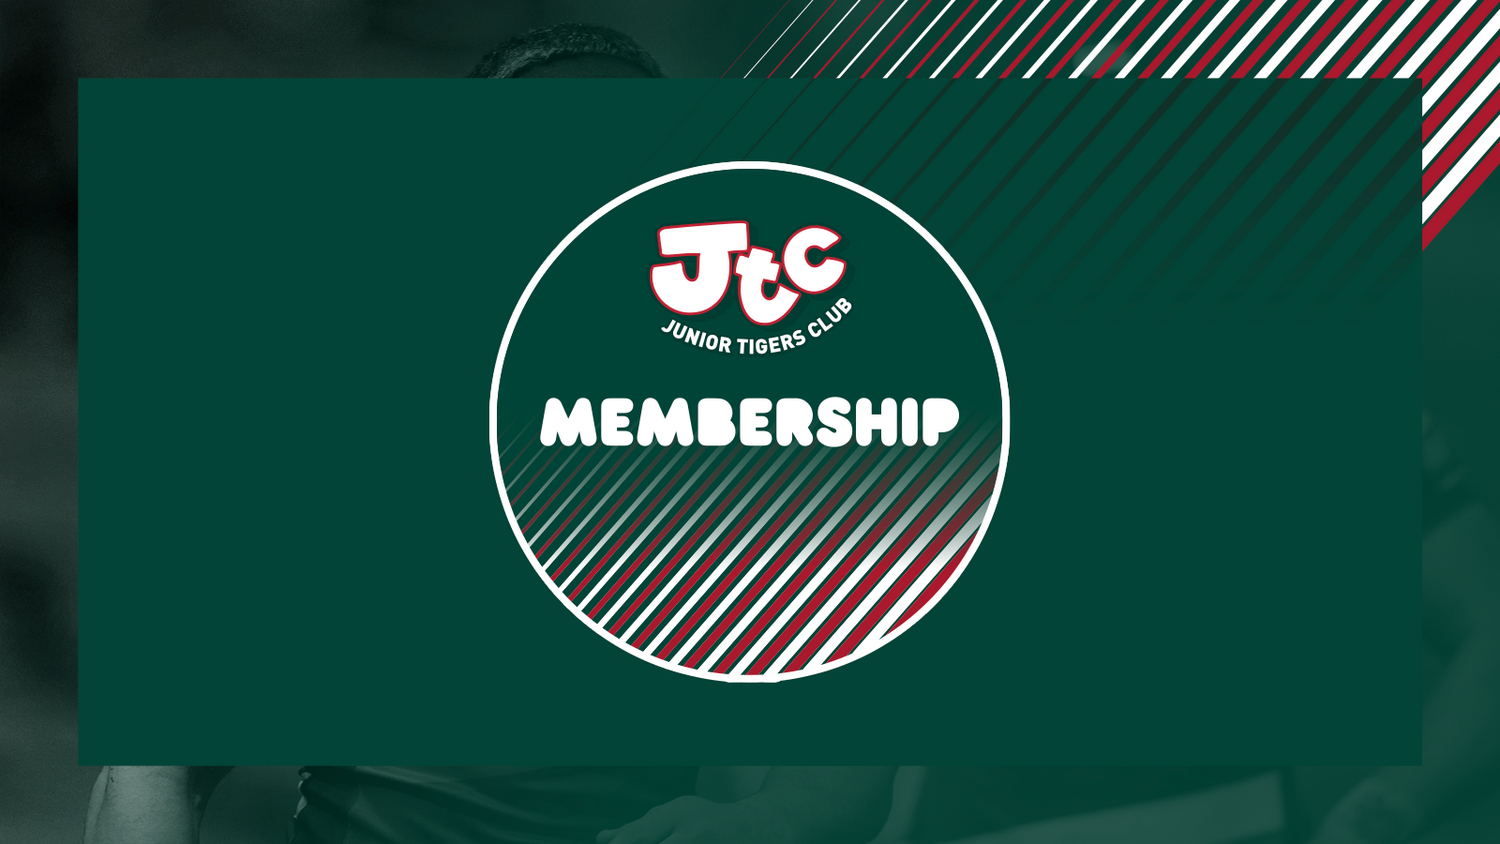 Leicester Tigers Junior Tigers Membership